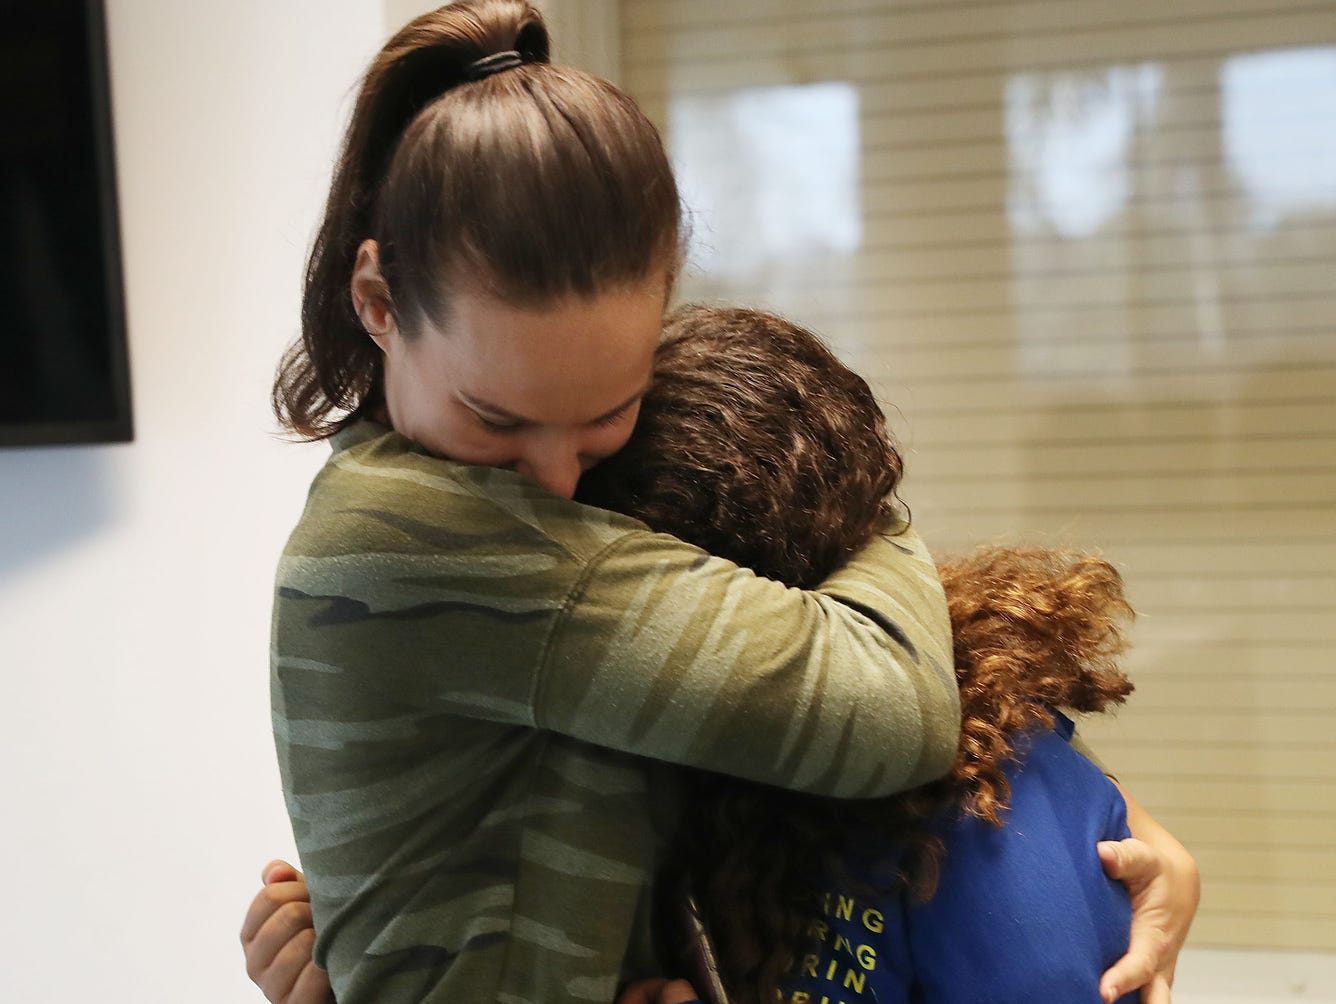 Erica Racz hugs her daughter after registering to vote at the Lee County Supervisor of Elections office in Fort Myers, Florida. Racz was able to register to vote for the first time after a new constitutional amendment took effect, which automatically restores voting rights to most people who have felonies on their record.